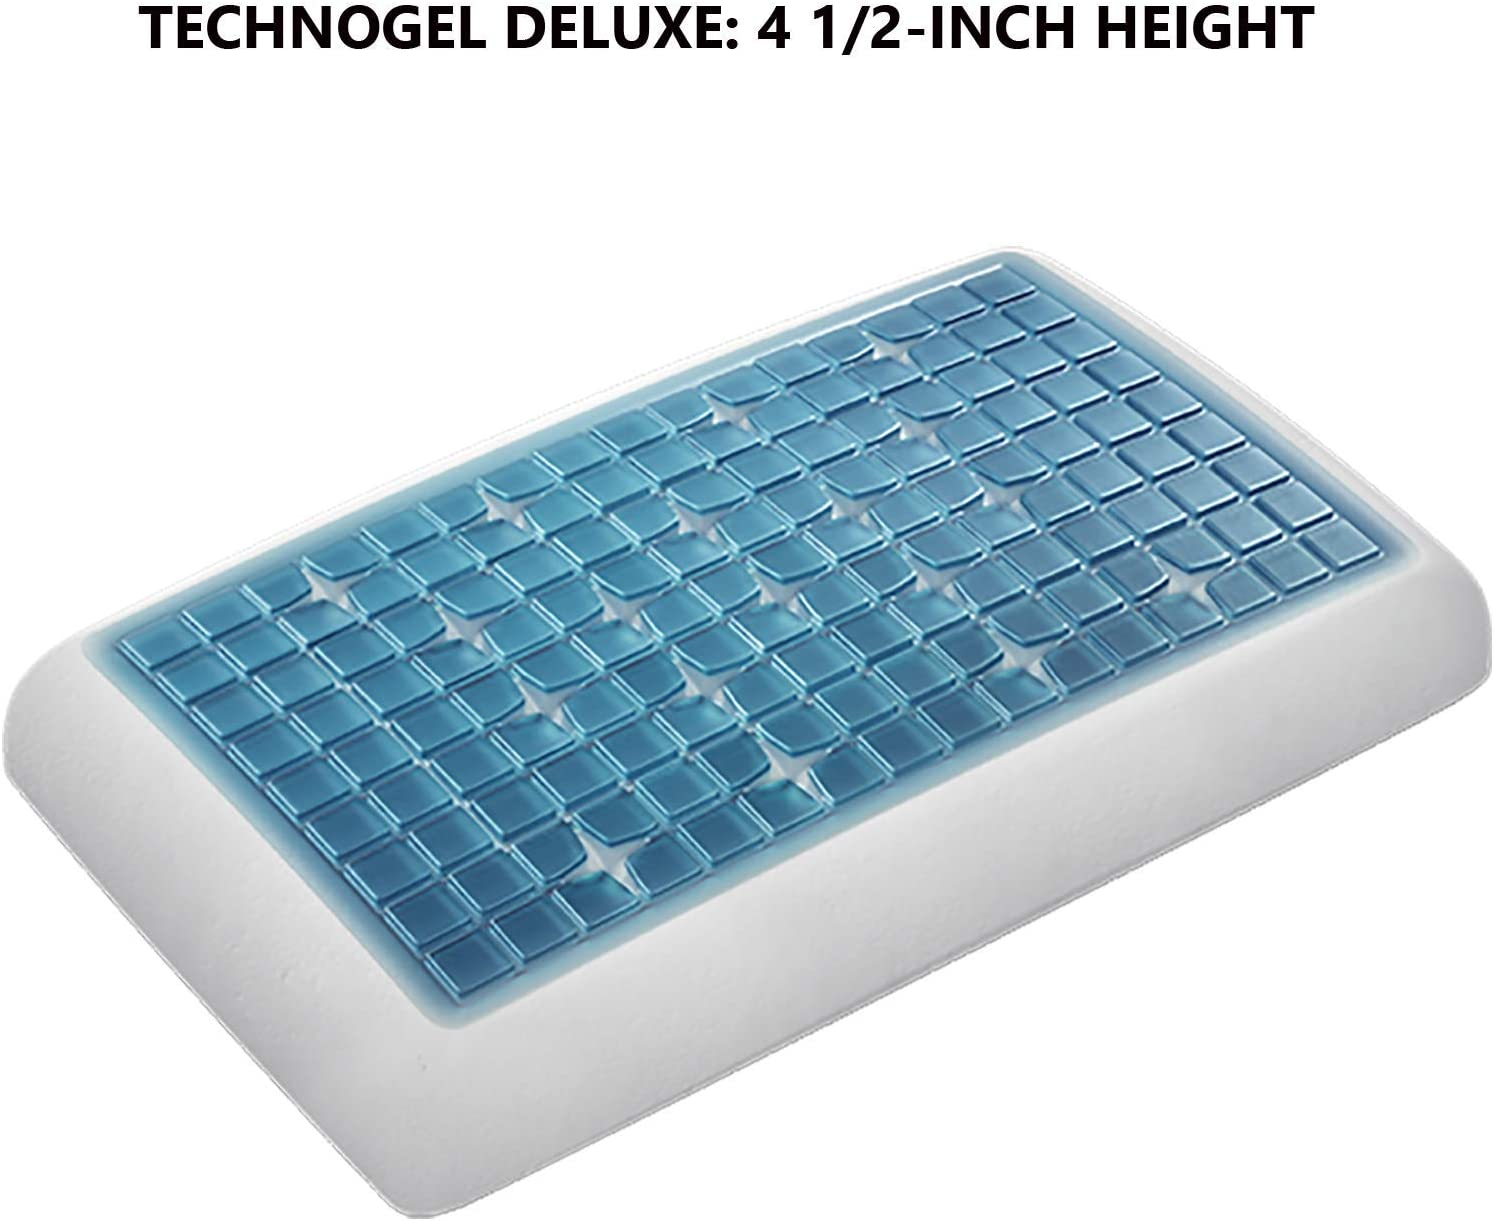 11 cm Technogel Deluxe cushion for neck support pillow with cooling gel pad 40 x 80 cm various cushion heights Plastic